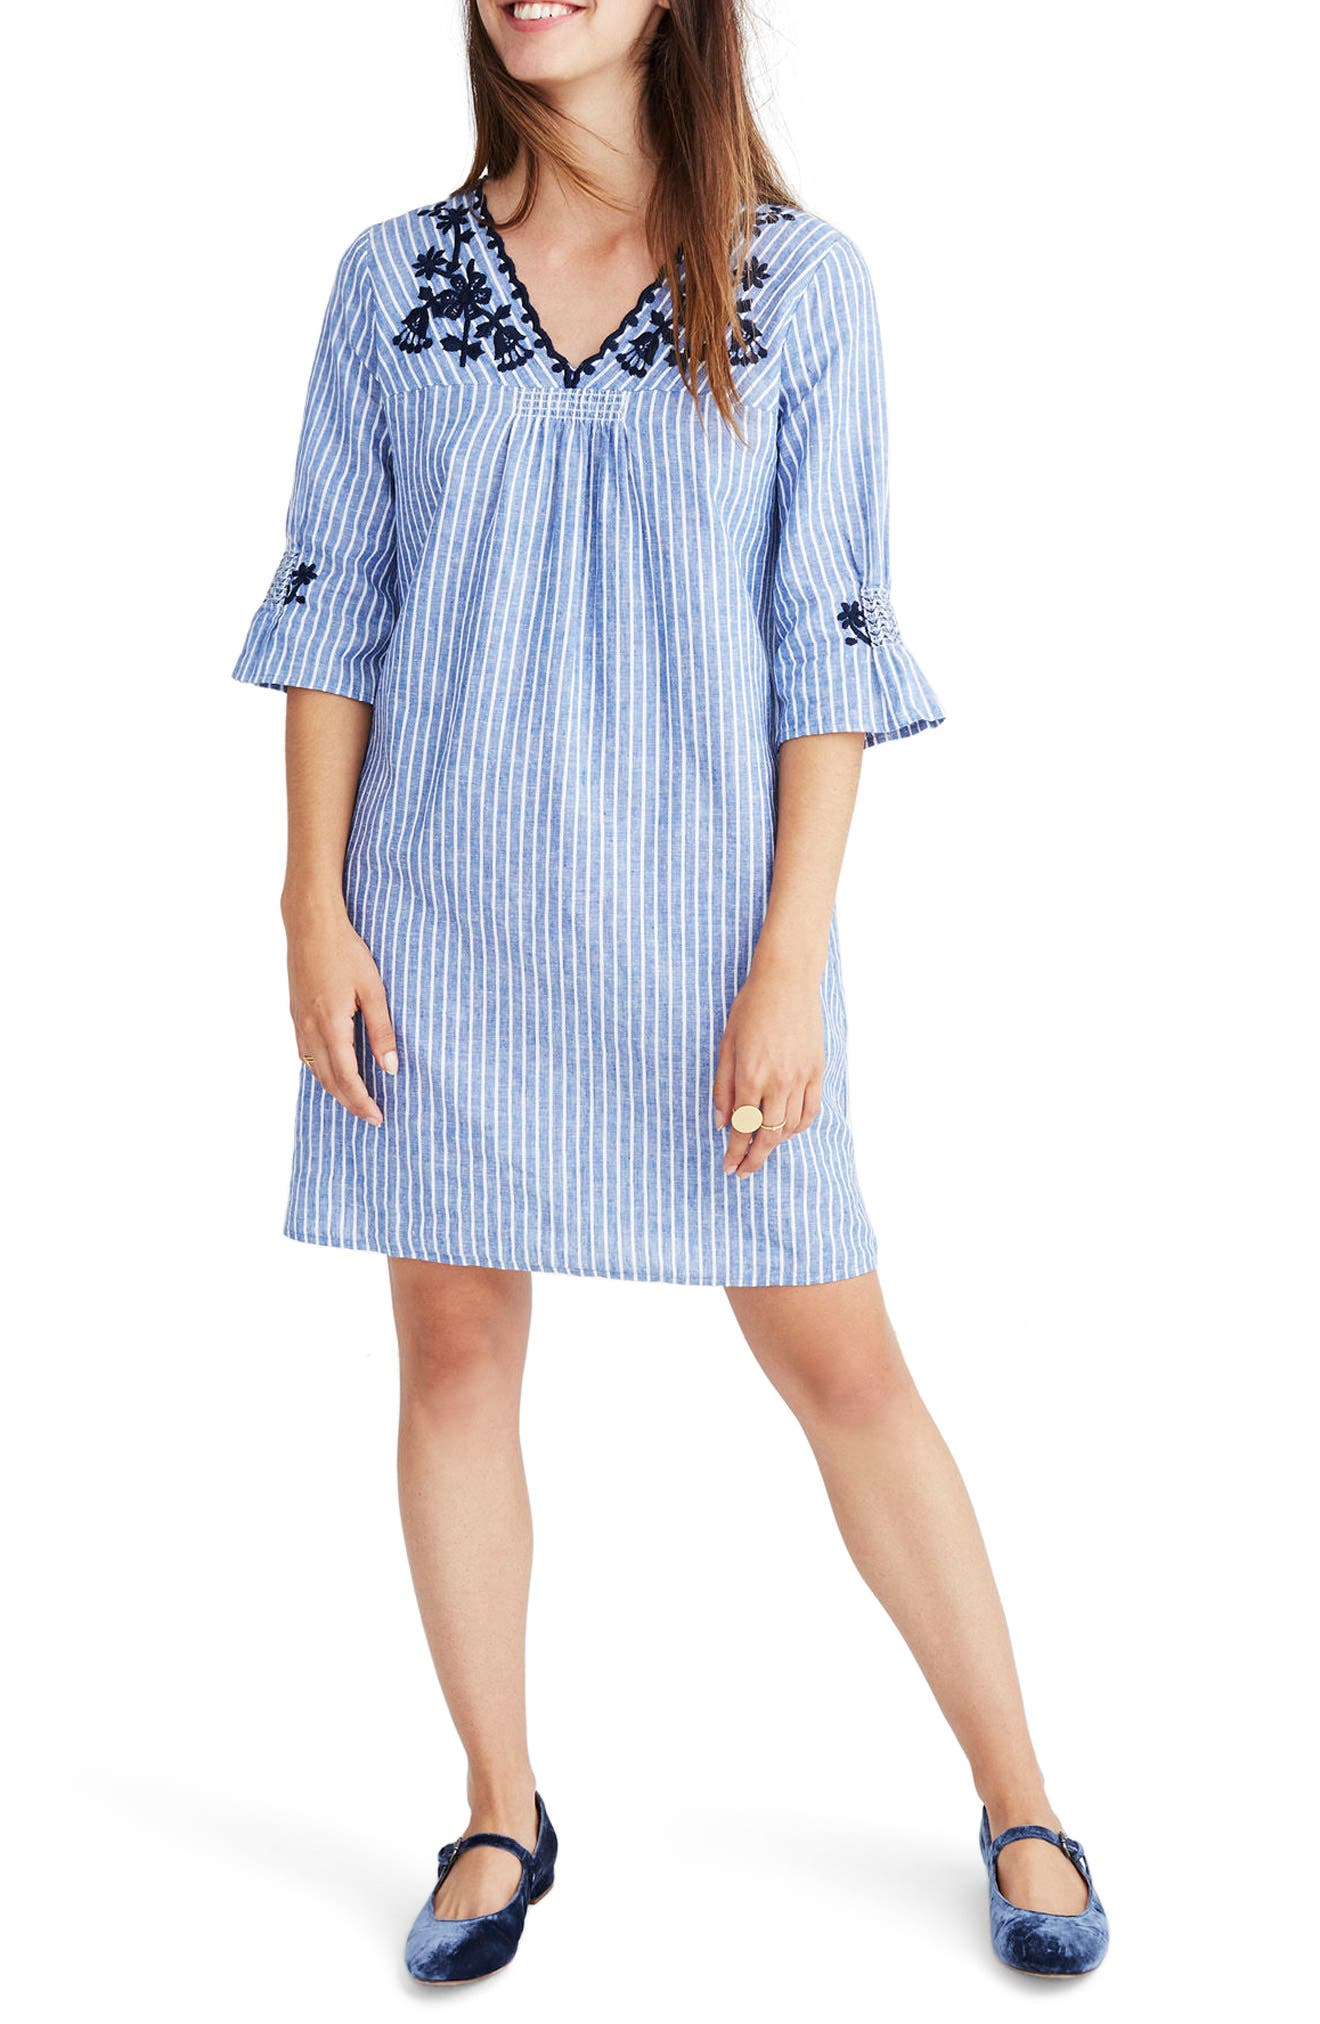 Breeze Embroidered Shift Dress,                             Main thumbnail 1, color,                             400